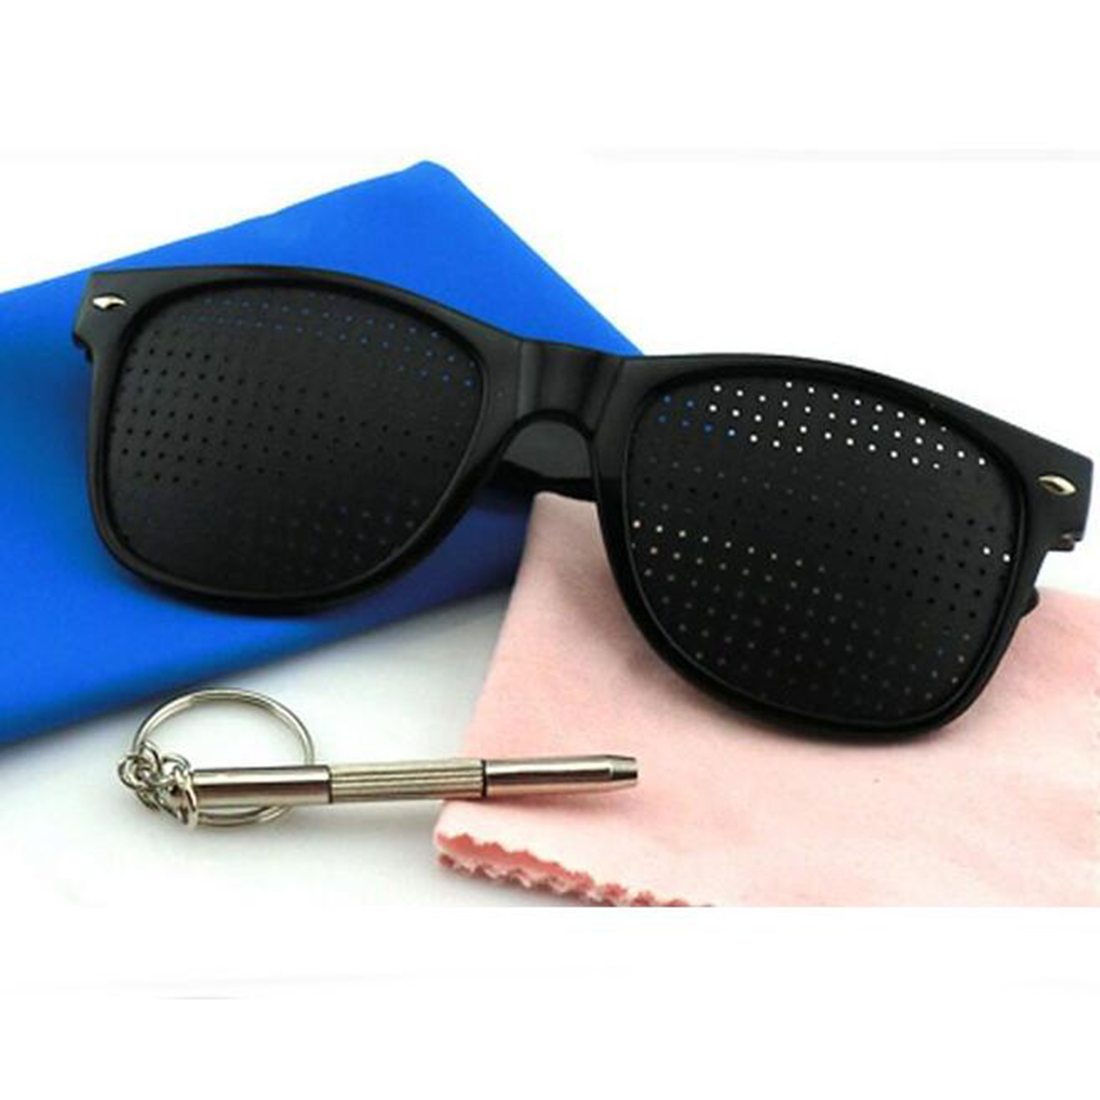 Top Sale Vision Care Safety Protection Glasses Eyesight